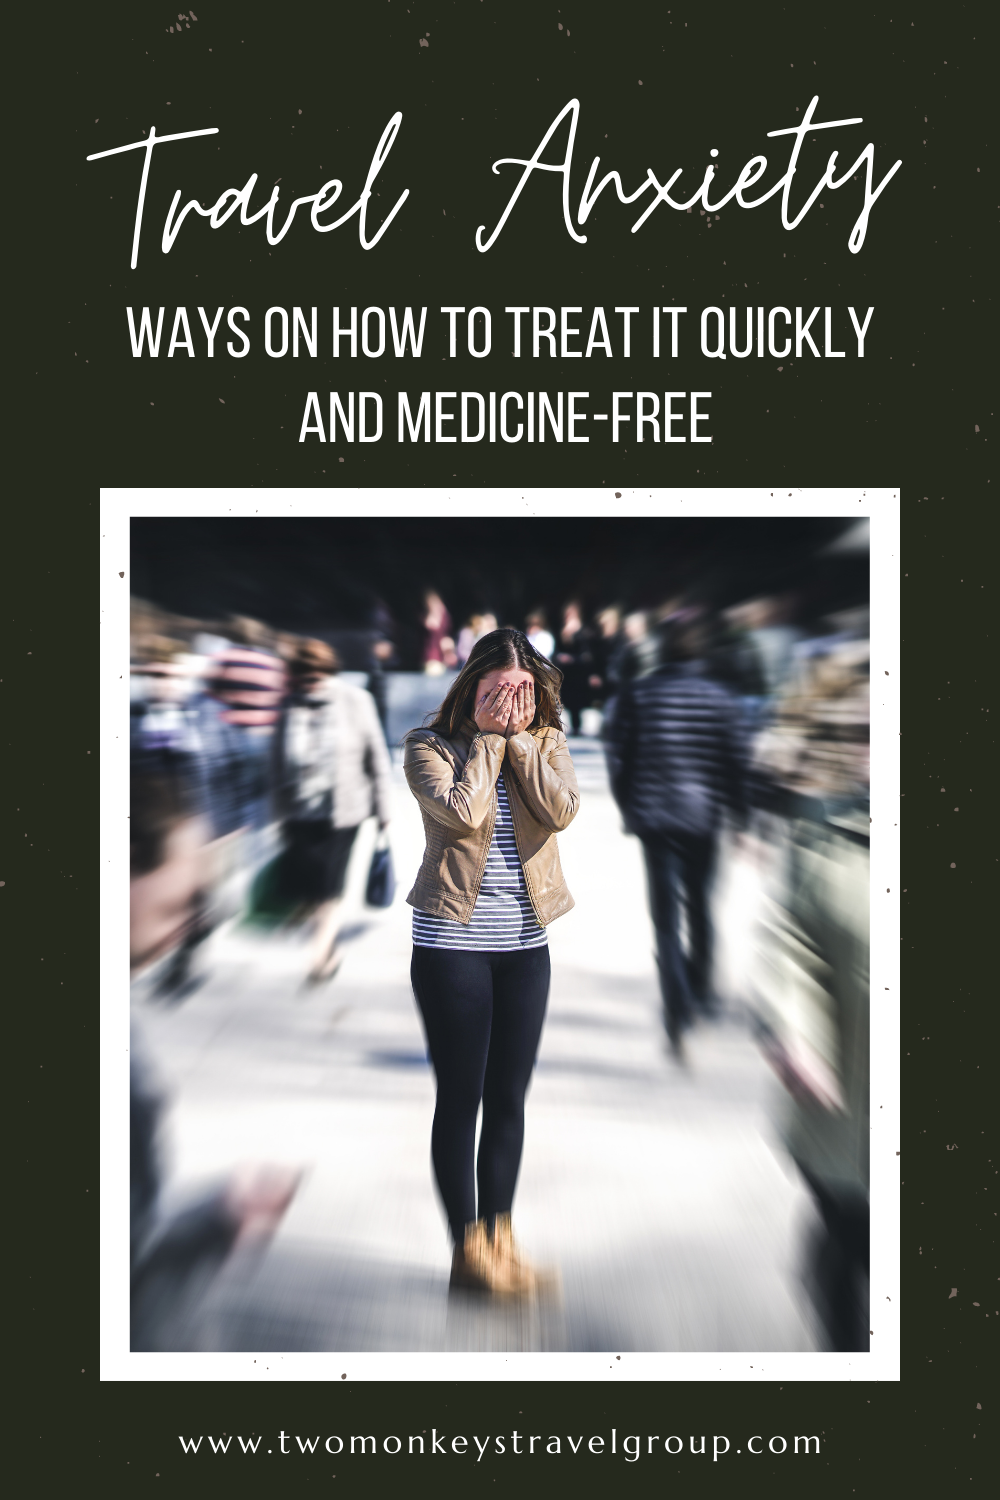 Travel Anxiety – 6 Ways on How To Treat It Quickly and Medicine Free2